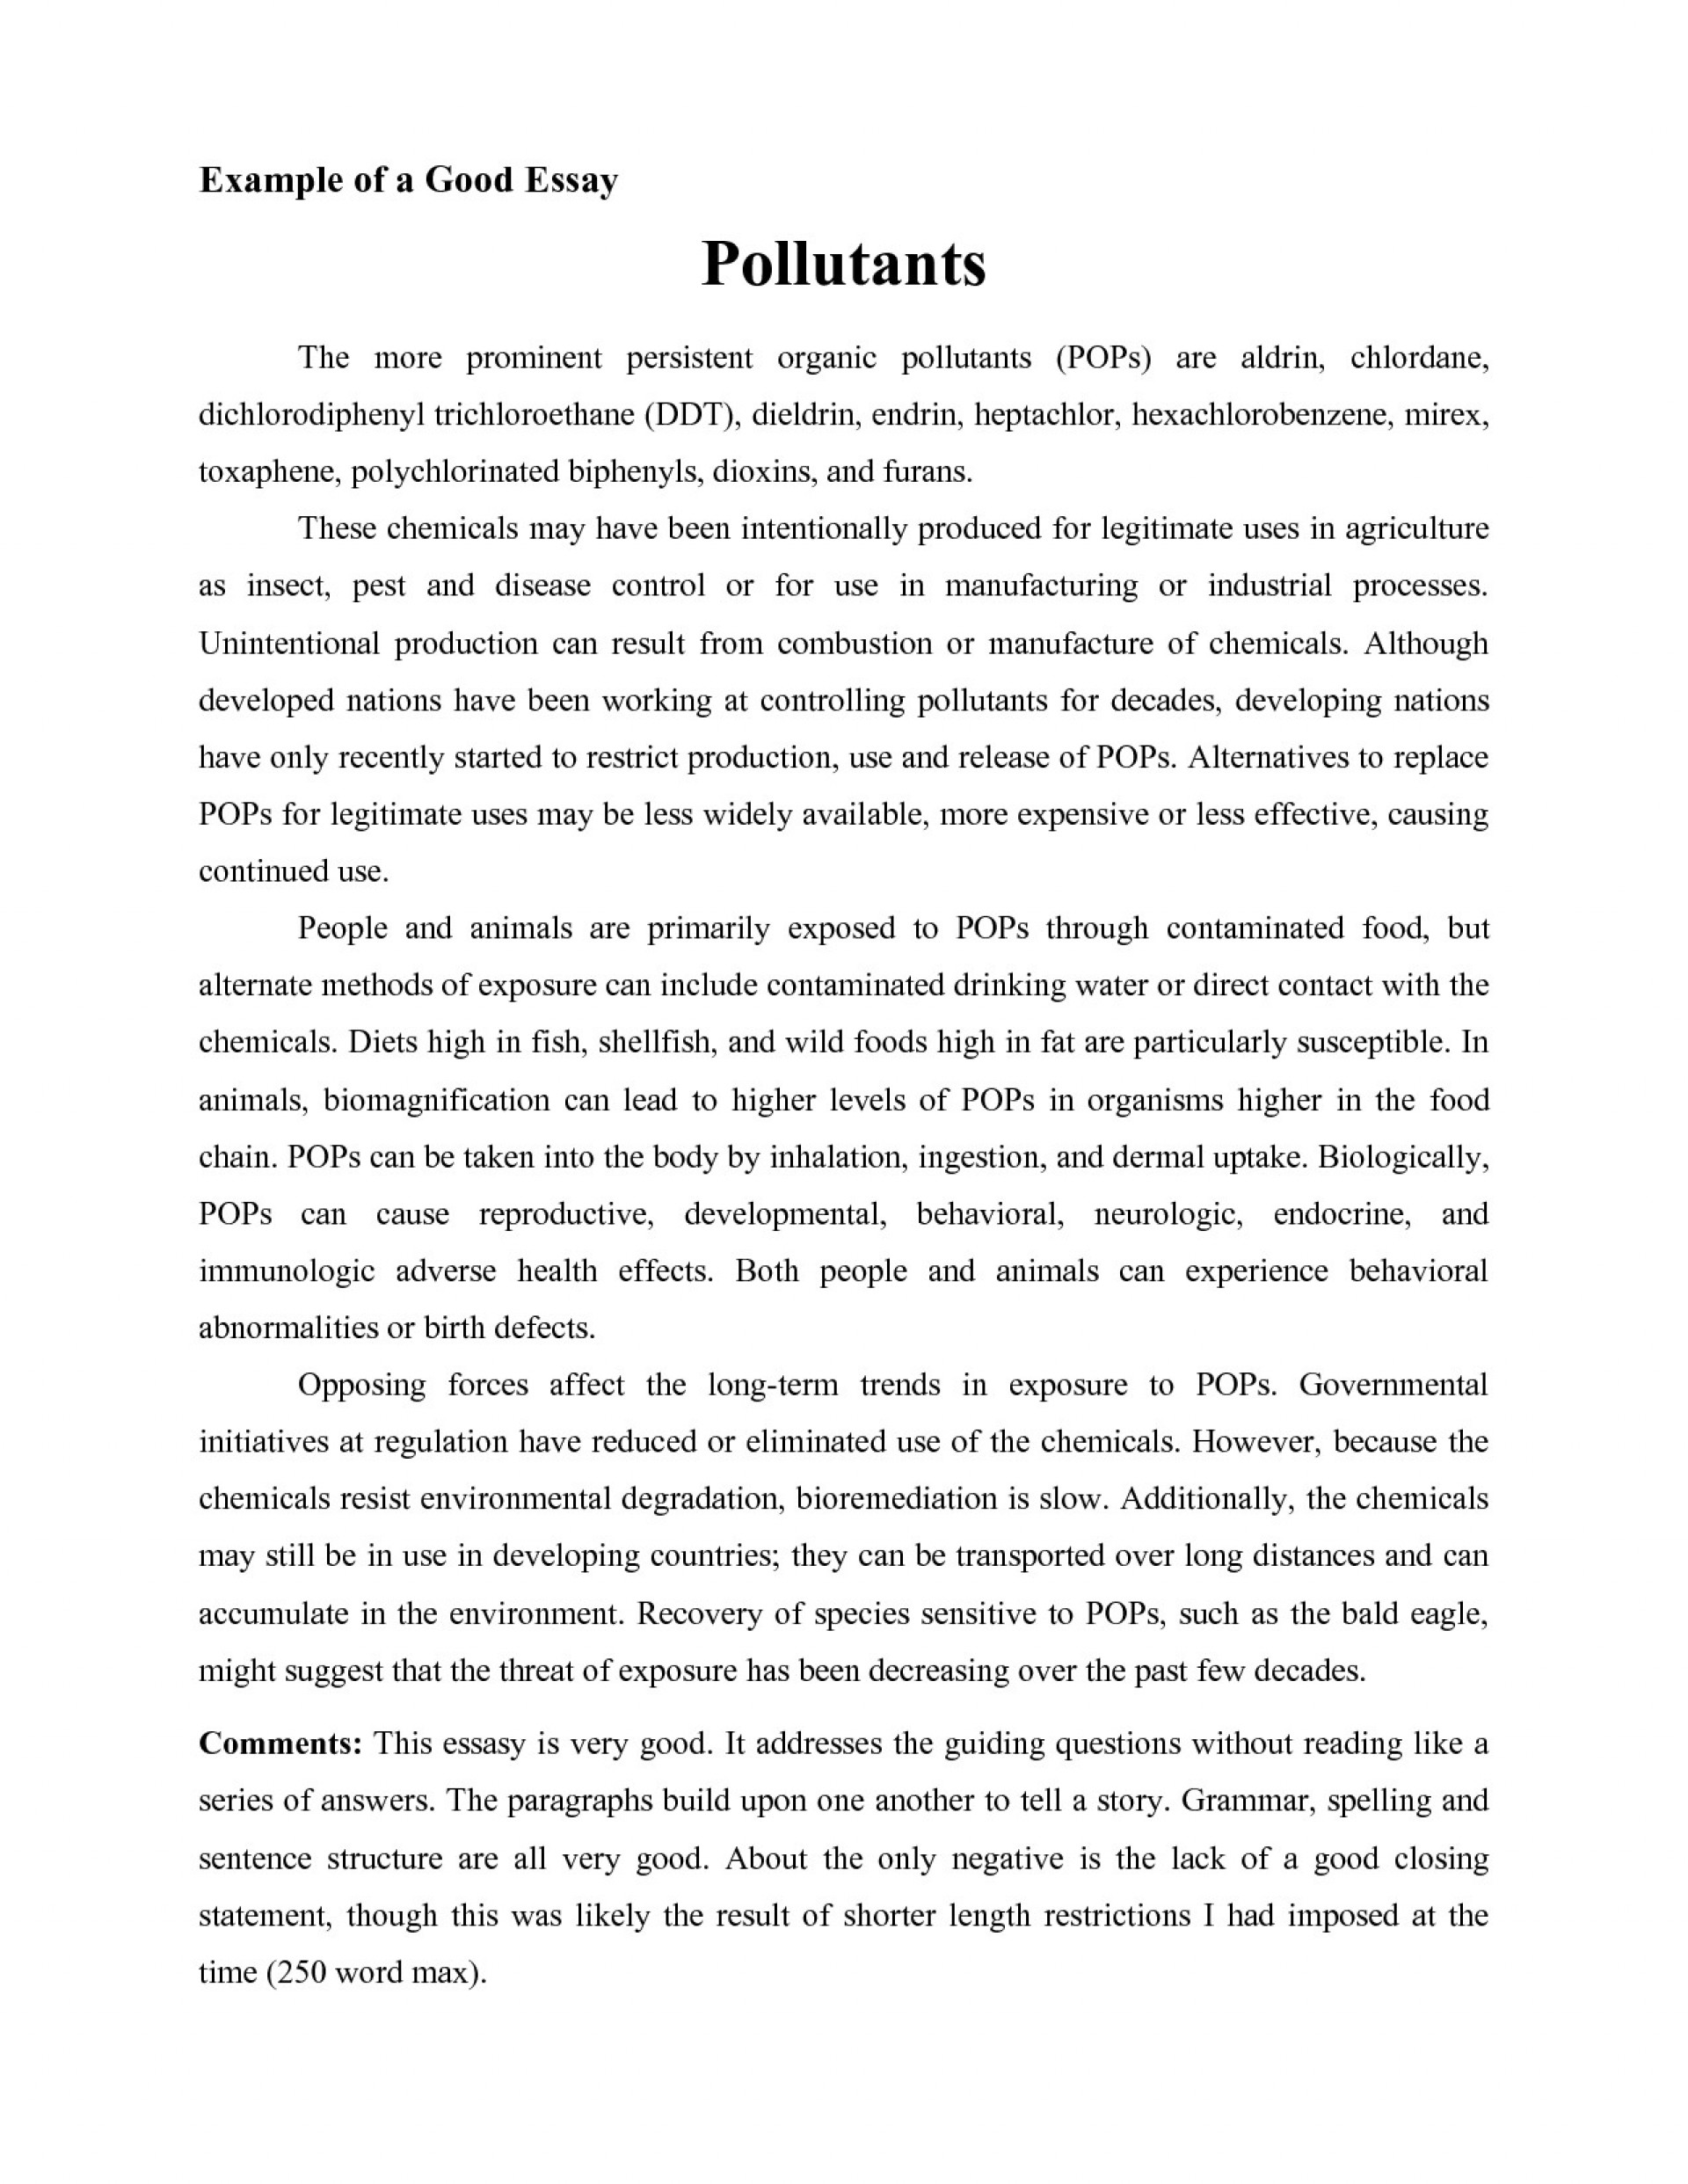 003 Causal Analysis Essay Examples New Template Example Selo L Striking Easy Topics Topic Ideas 1920